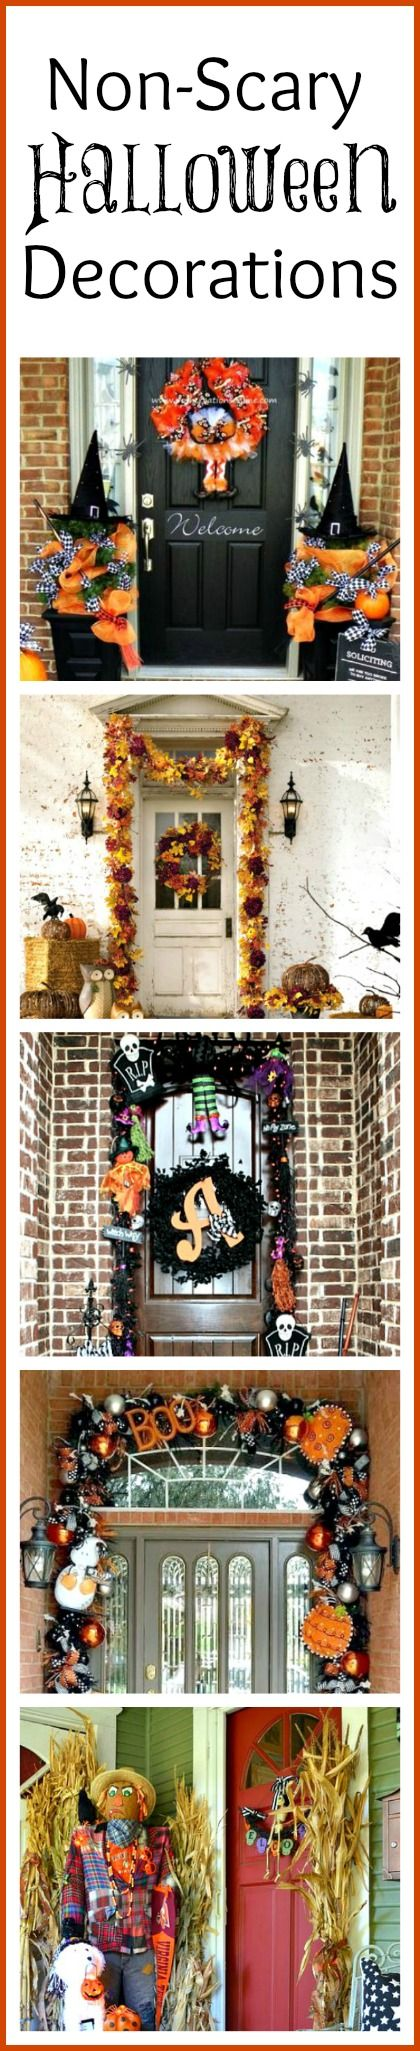 Non-Scary Outdoor Halloween Decorations For Your Front Door